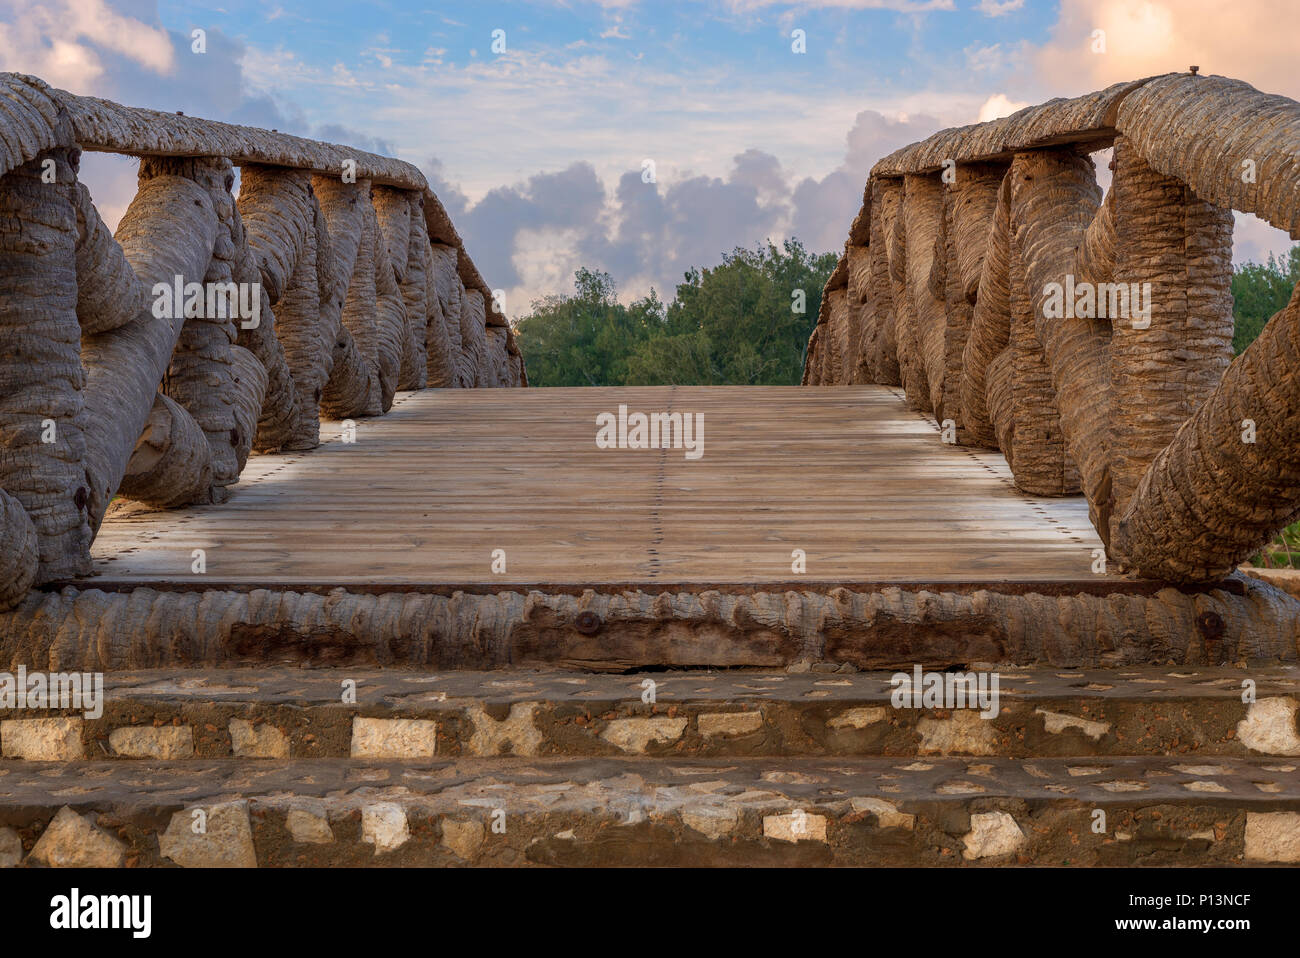 Wooden bridge made of palm trunks leading to trees with partly cloudy sky in sunrise time at Montaza public park in summer time, Alexandria, Egypt - Stock Image